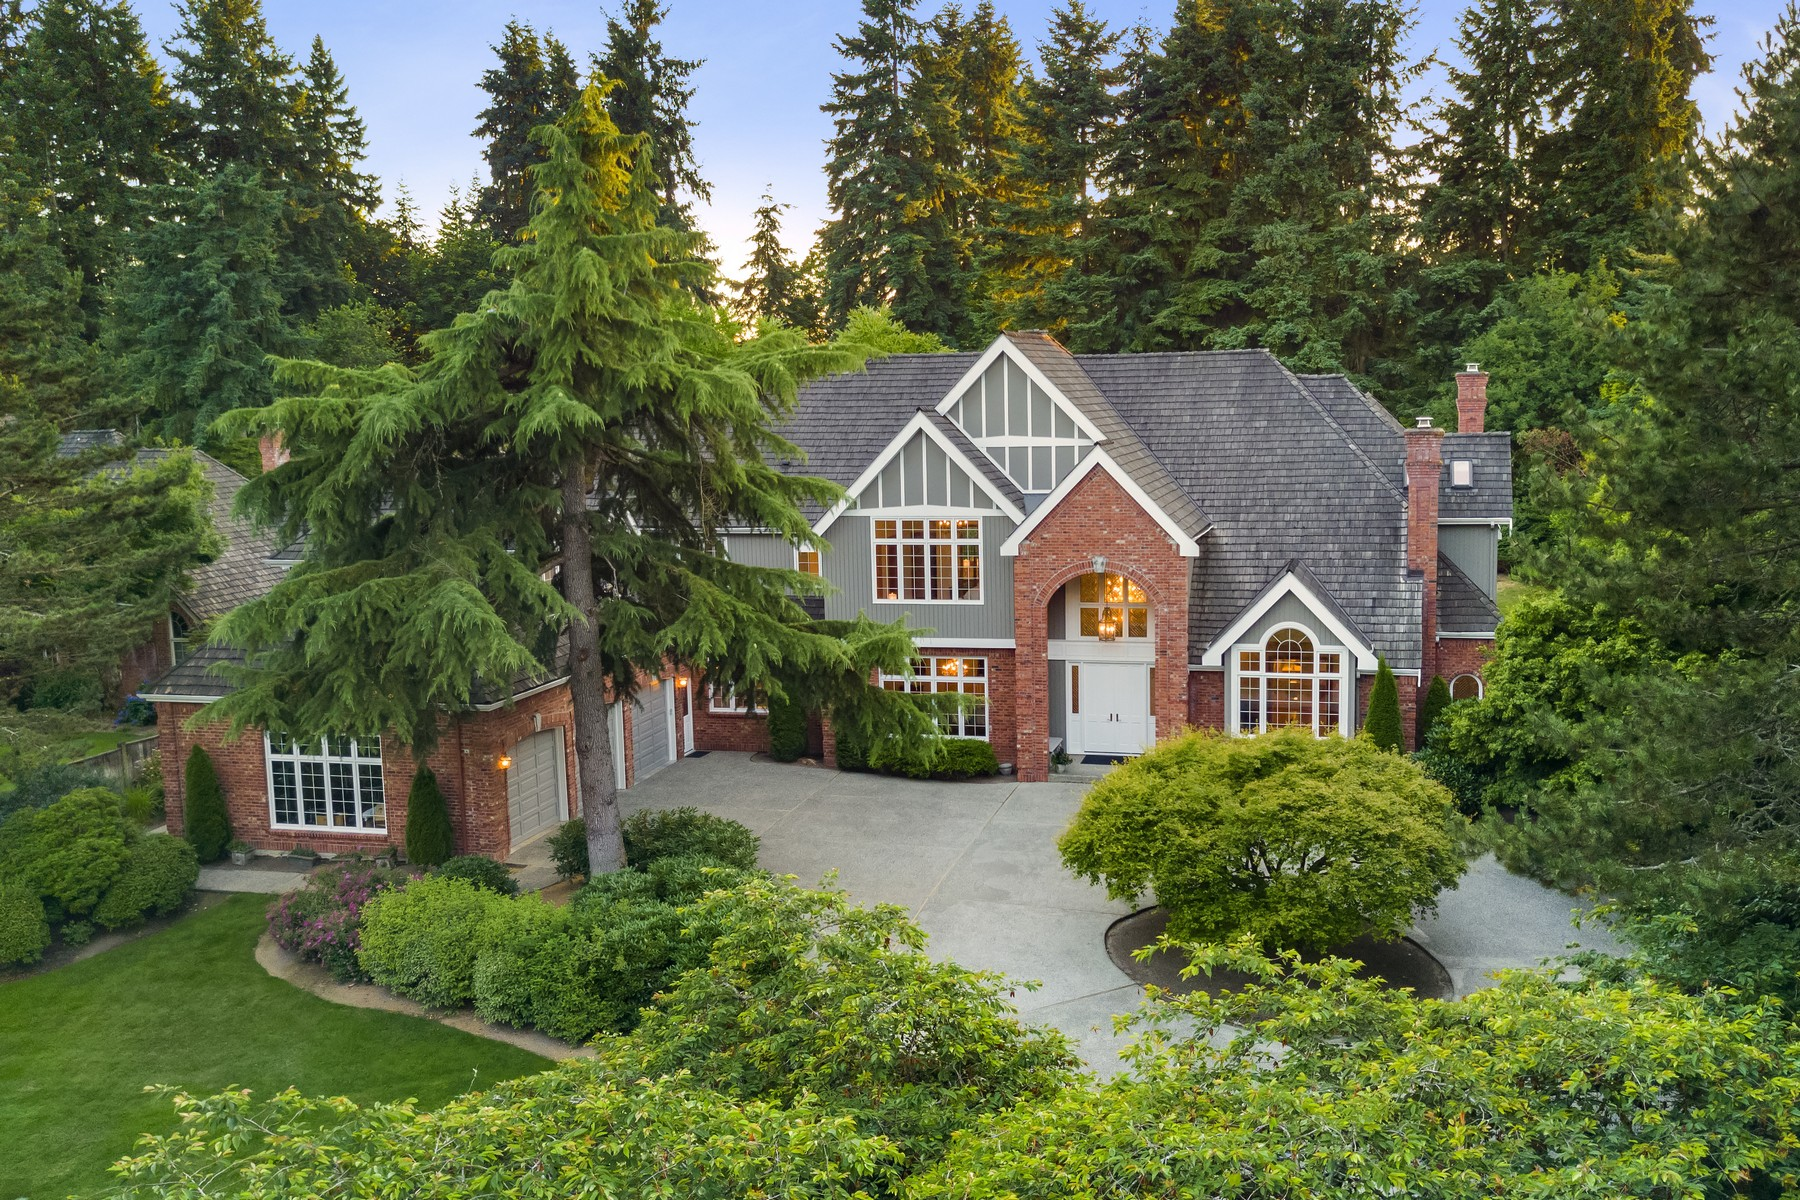 واحد منزل الأسرة للـ Sale في Architecturally Distinct Hollywood Hills Estate 15430 NE 152nd Place Woodinville, Washington, 98072 United States